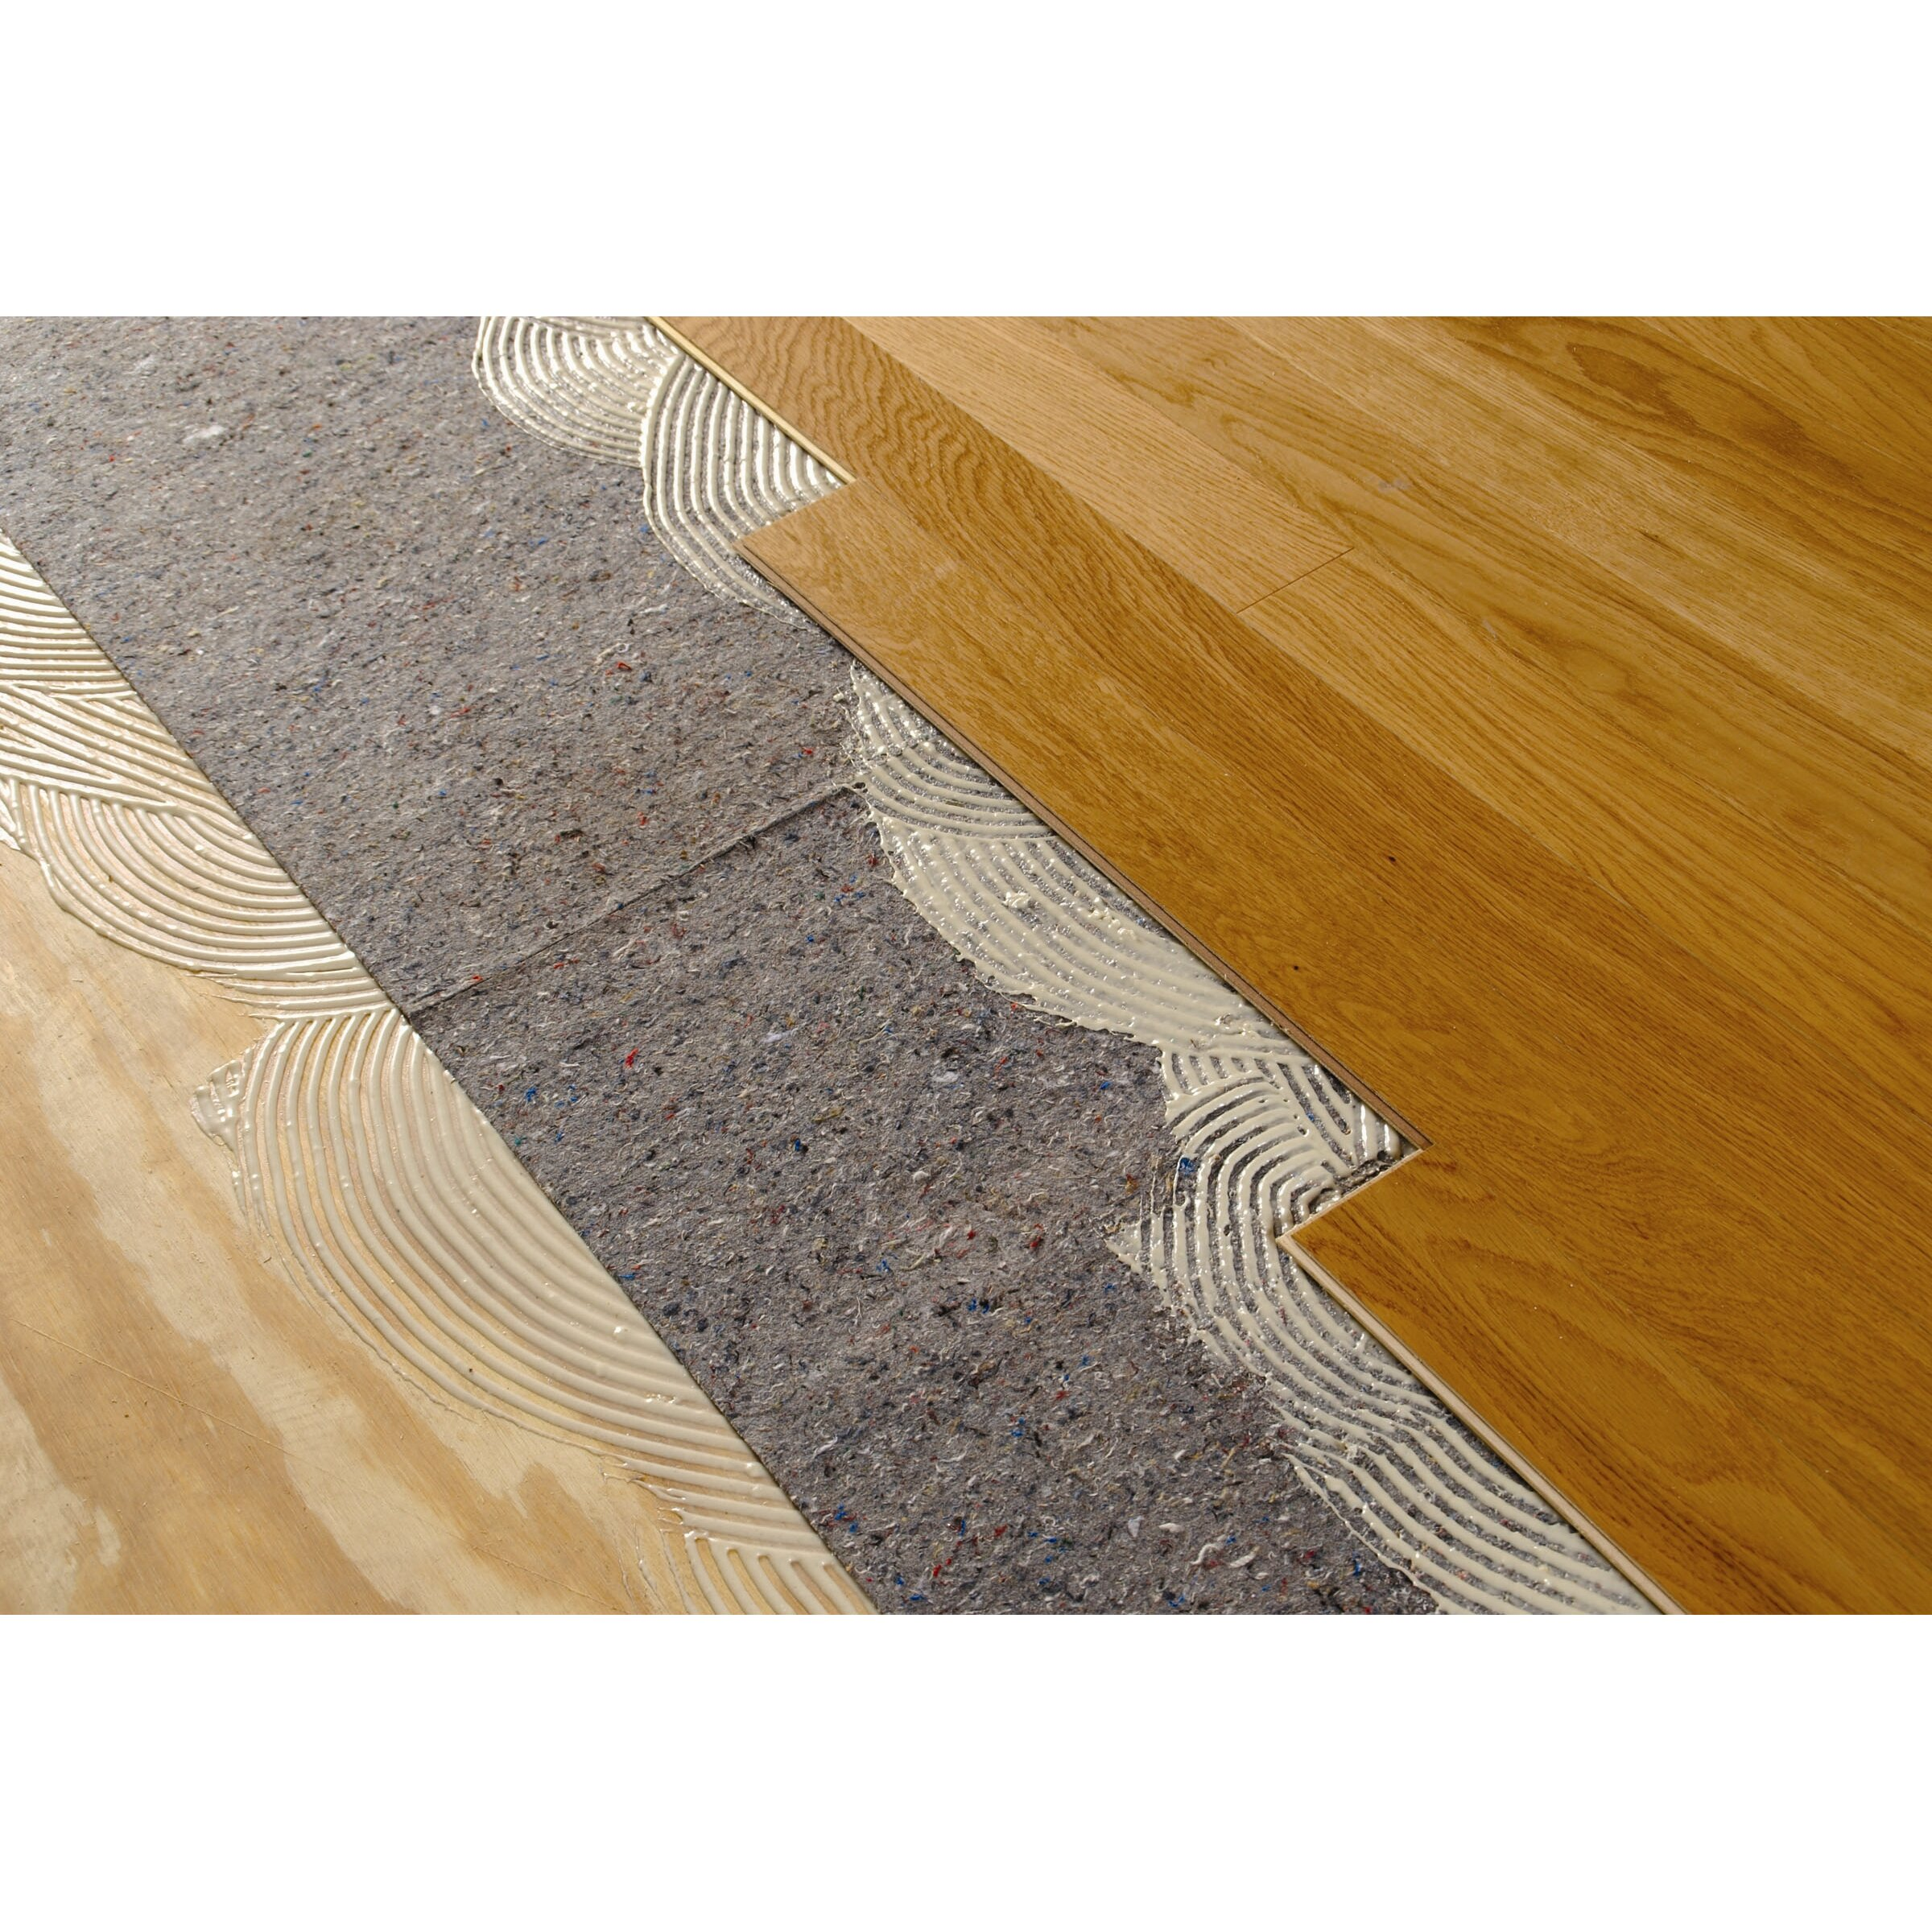 Mp global products insulayment acoustical fiber for 6mm wood floor underlay